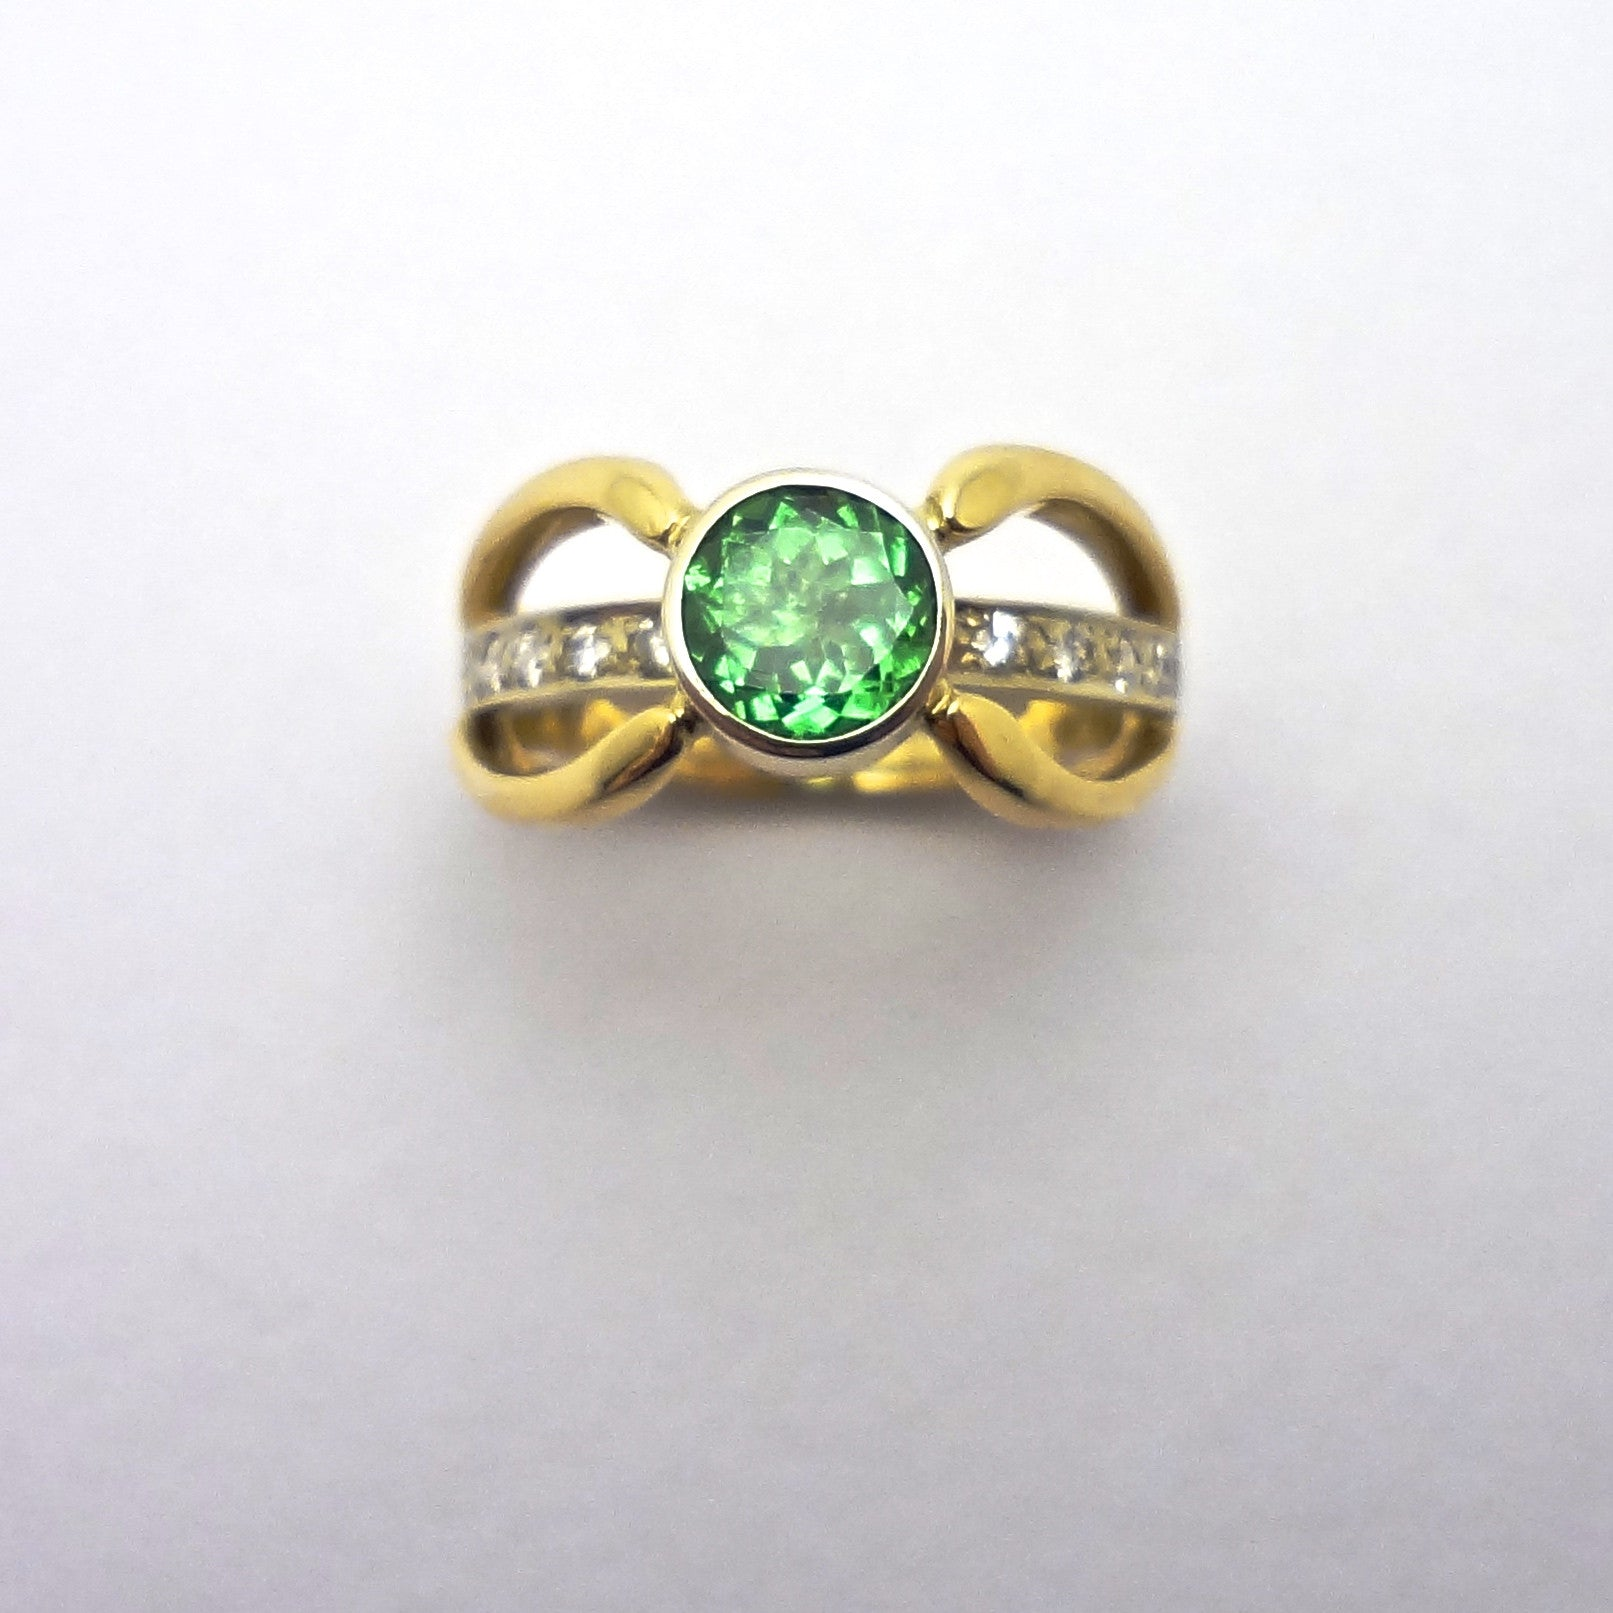 ring green jewellery garnet yellow rings image gold tsavorite diamond gemstone